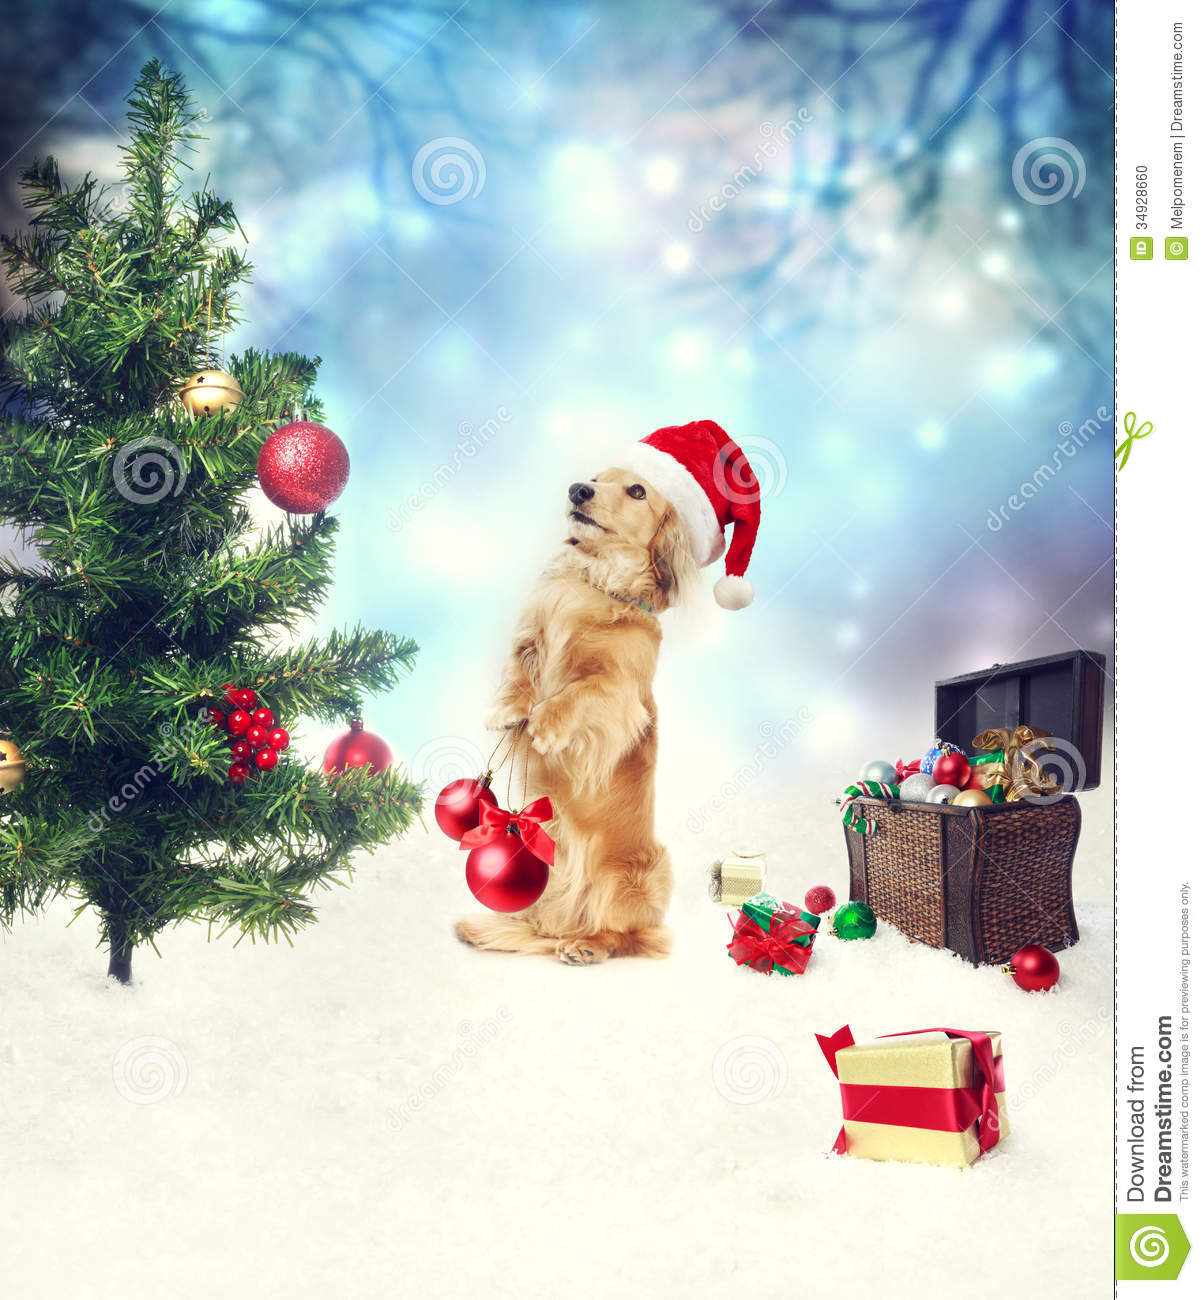 Christmas Tree Decorations For Dogs : Dachshund dog decorating christmas tree stock photo